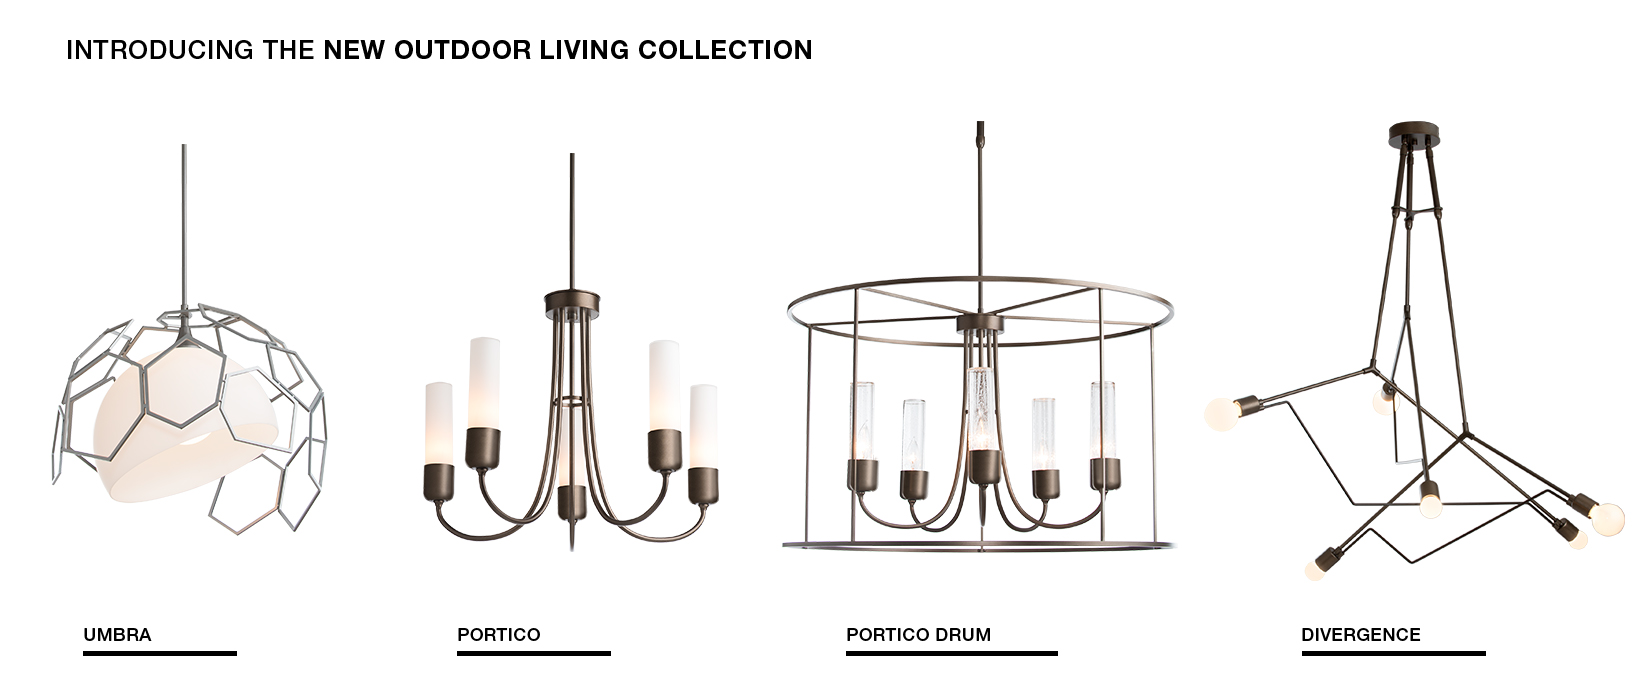 Outdoor Living Products Umbra Portico Portico Drum and Divergence